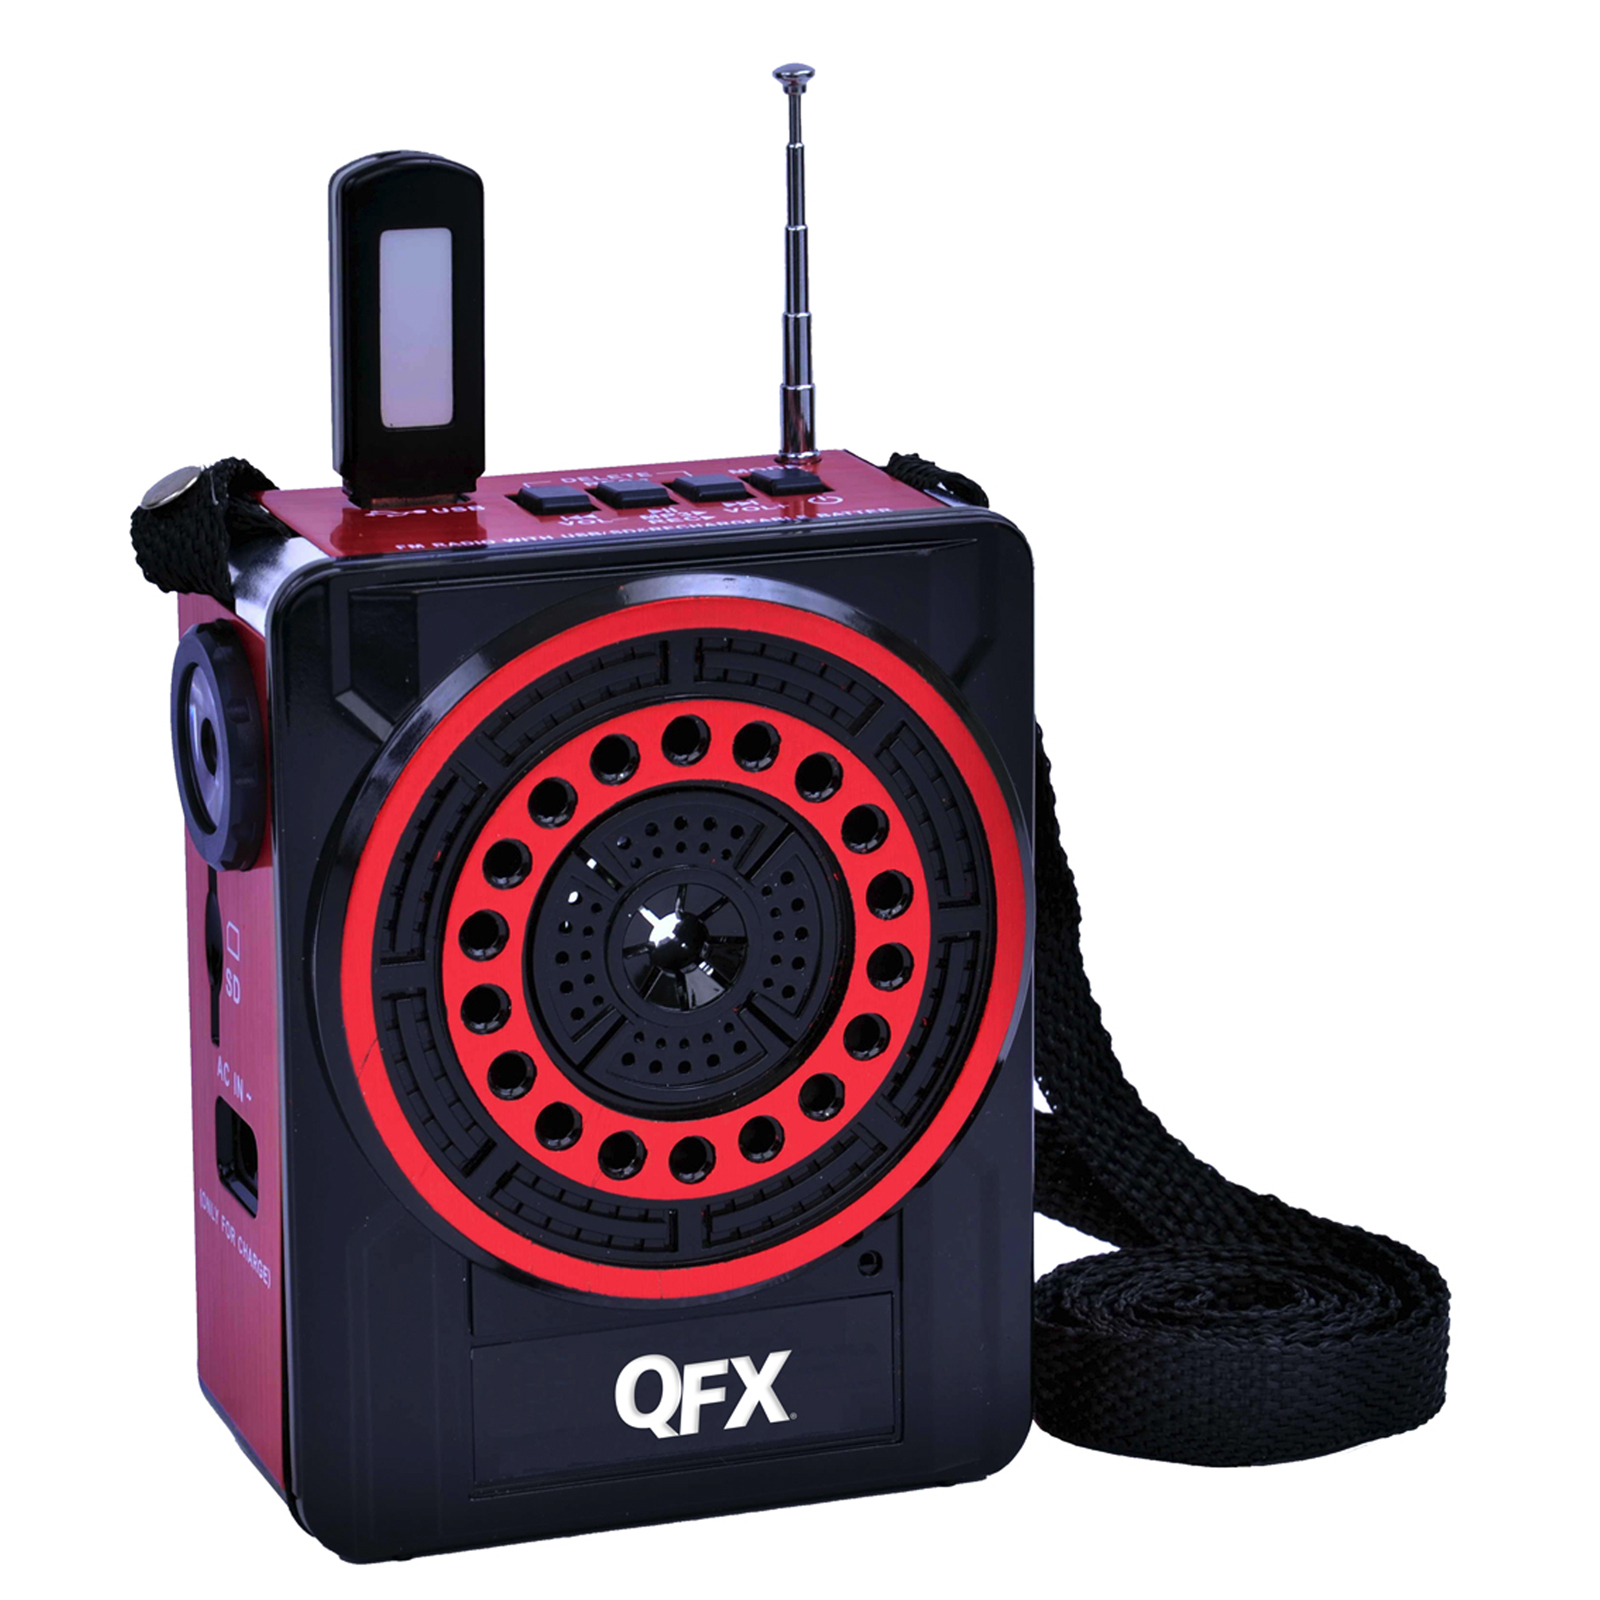 Quantum FX PA SYSTEM WITH USB/SD AND FM RADIO